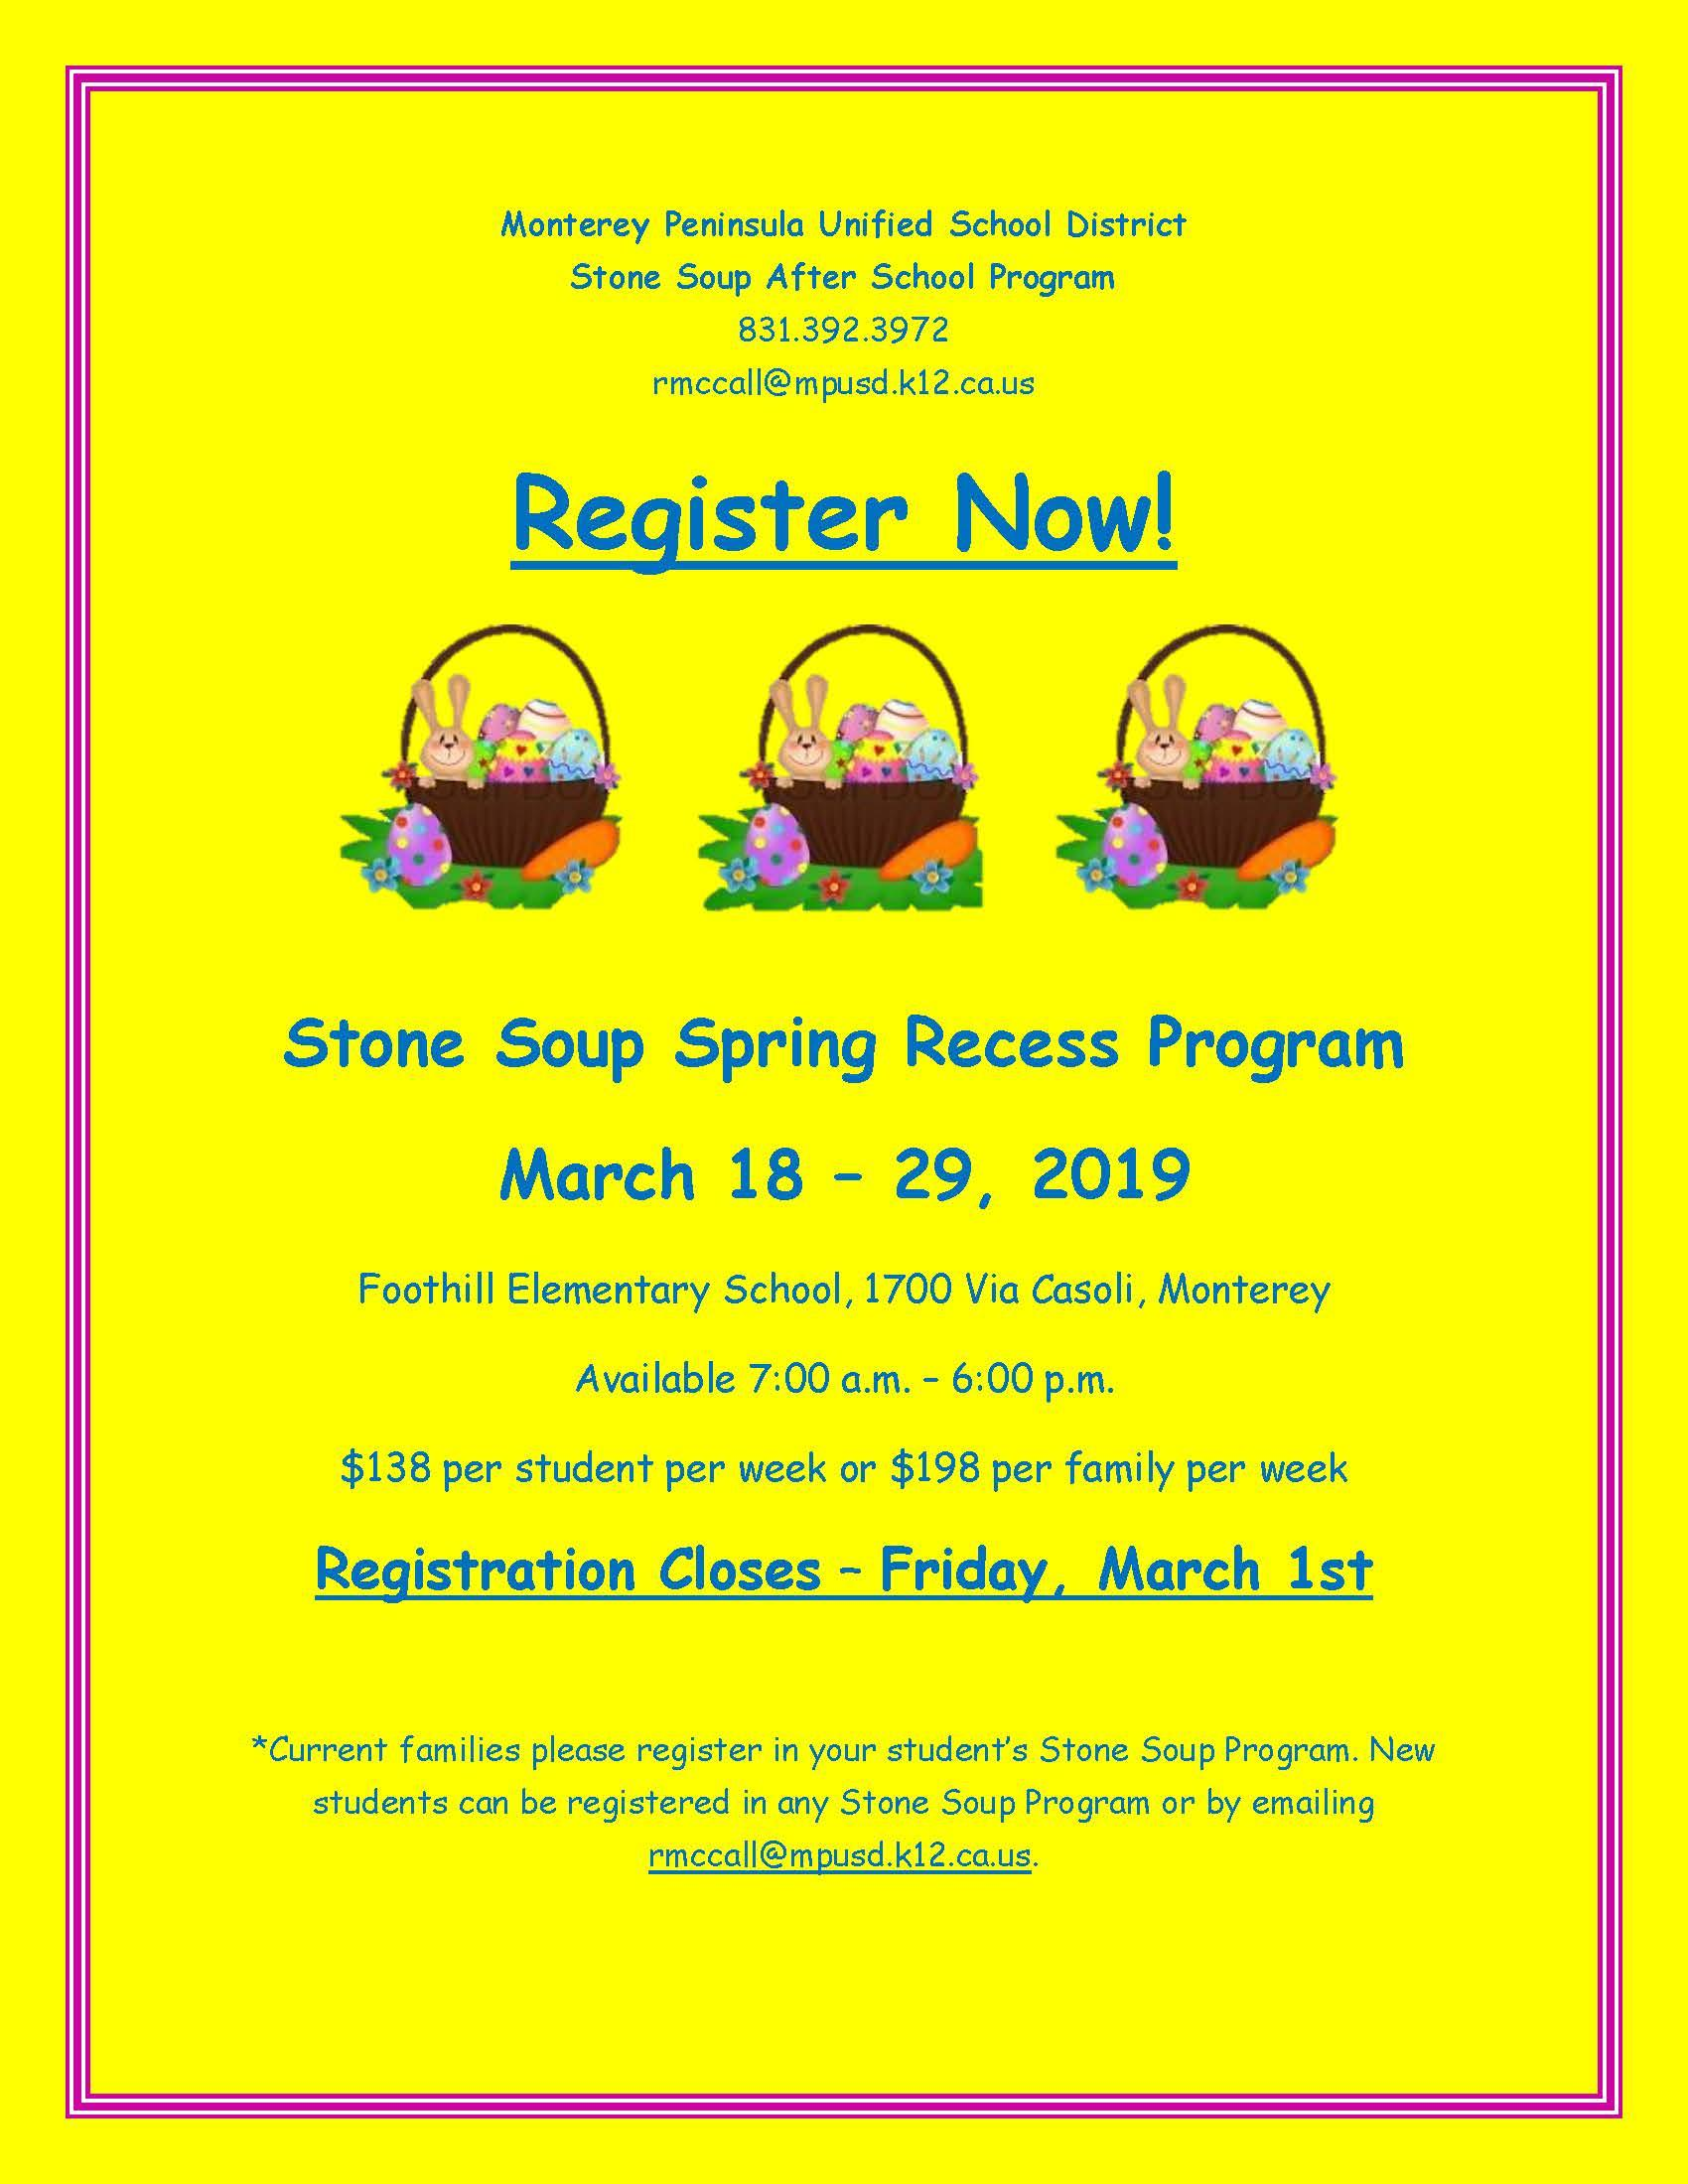 Stone Soup offers a spring break program for students.